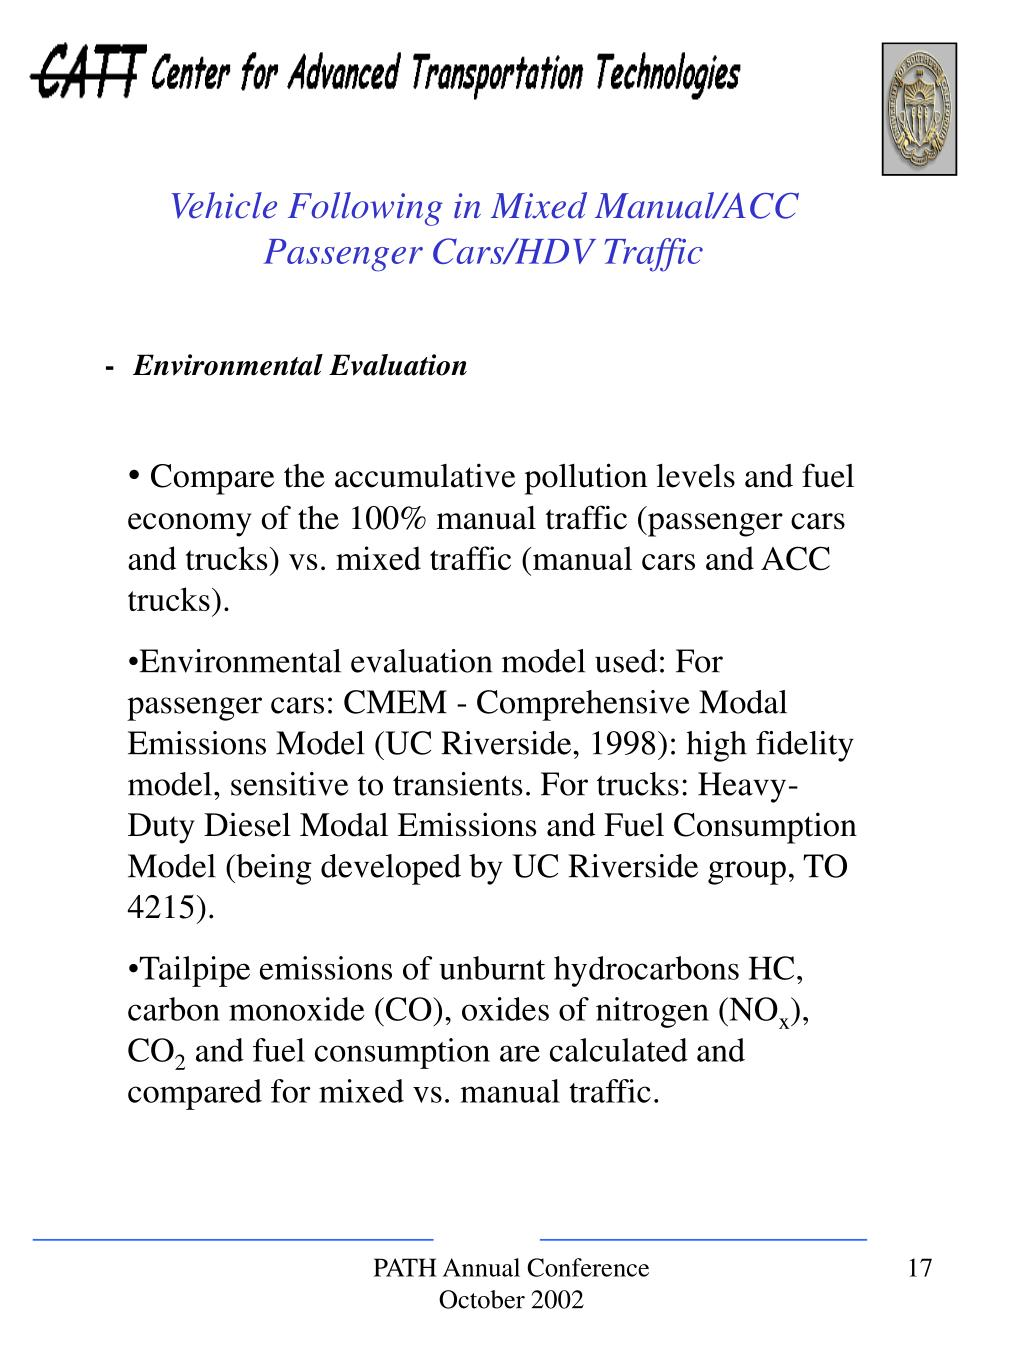 Vehicle Following in Mixed Manual/ACC   Passenger Cars/HDV Traffic